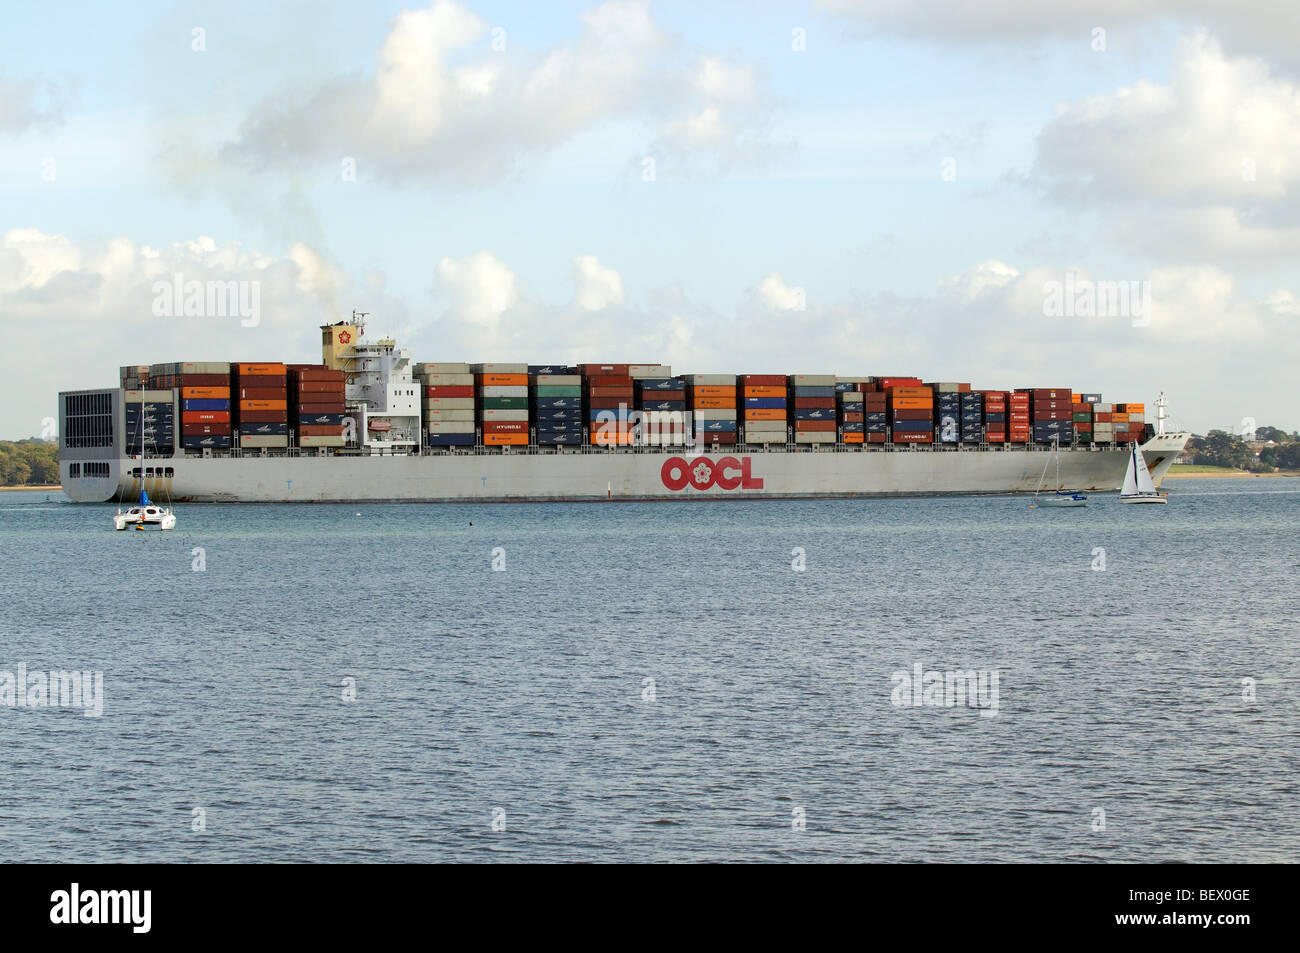 Outbound Cargo Stock Photos & Outbound Cargo Stock Images